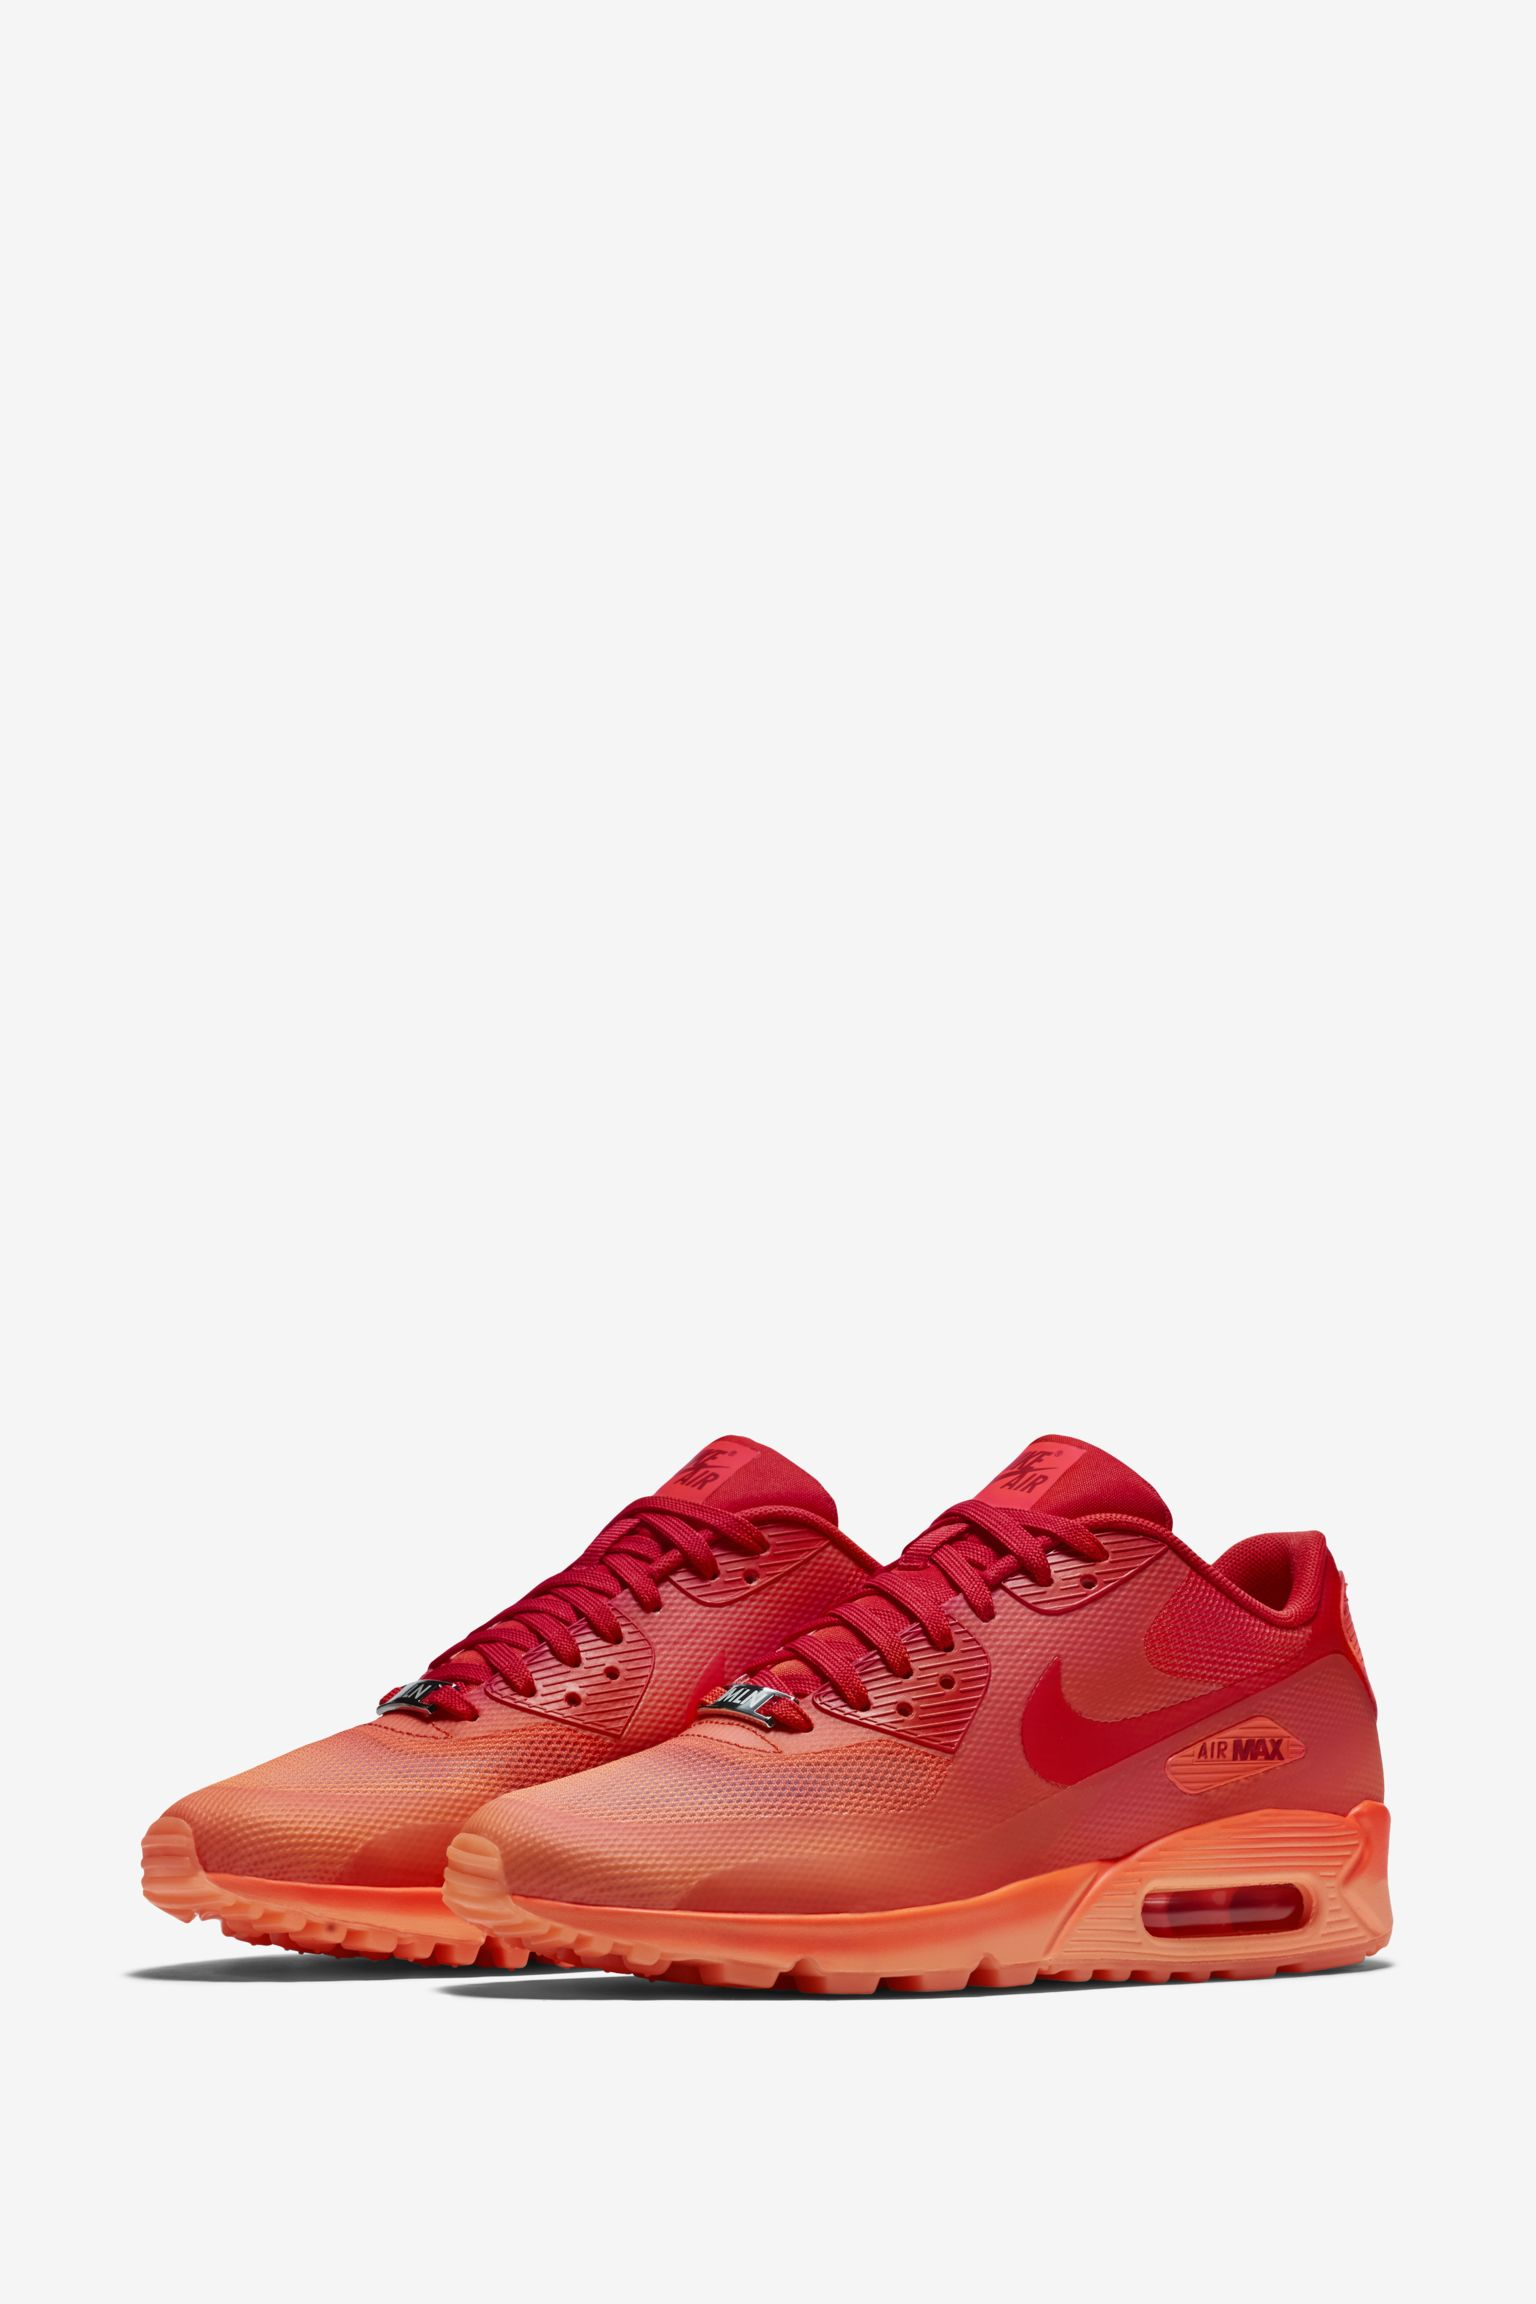 competitive price 05285 1c7d7 ... QS  Womens Nike Air Max 90 Milan Nike⁠+ SNKRS